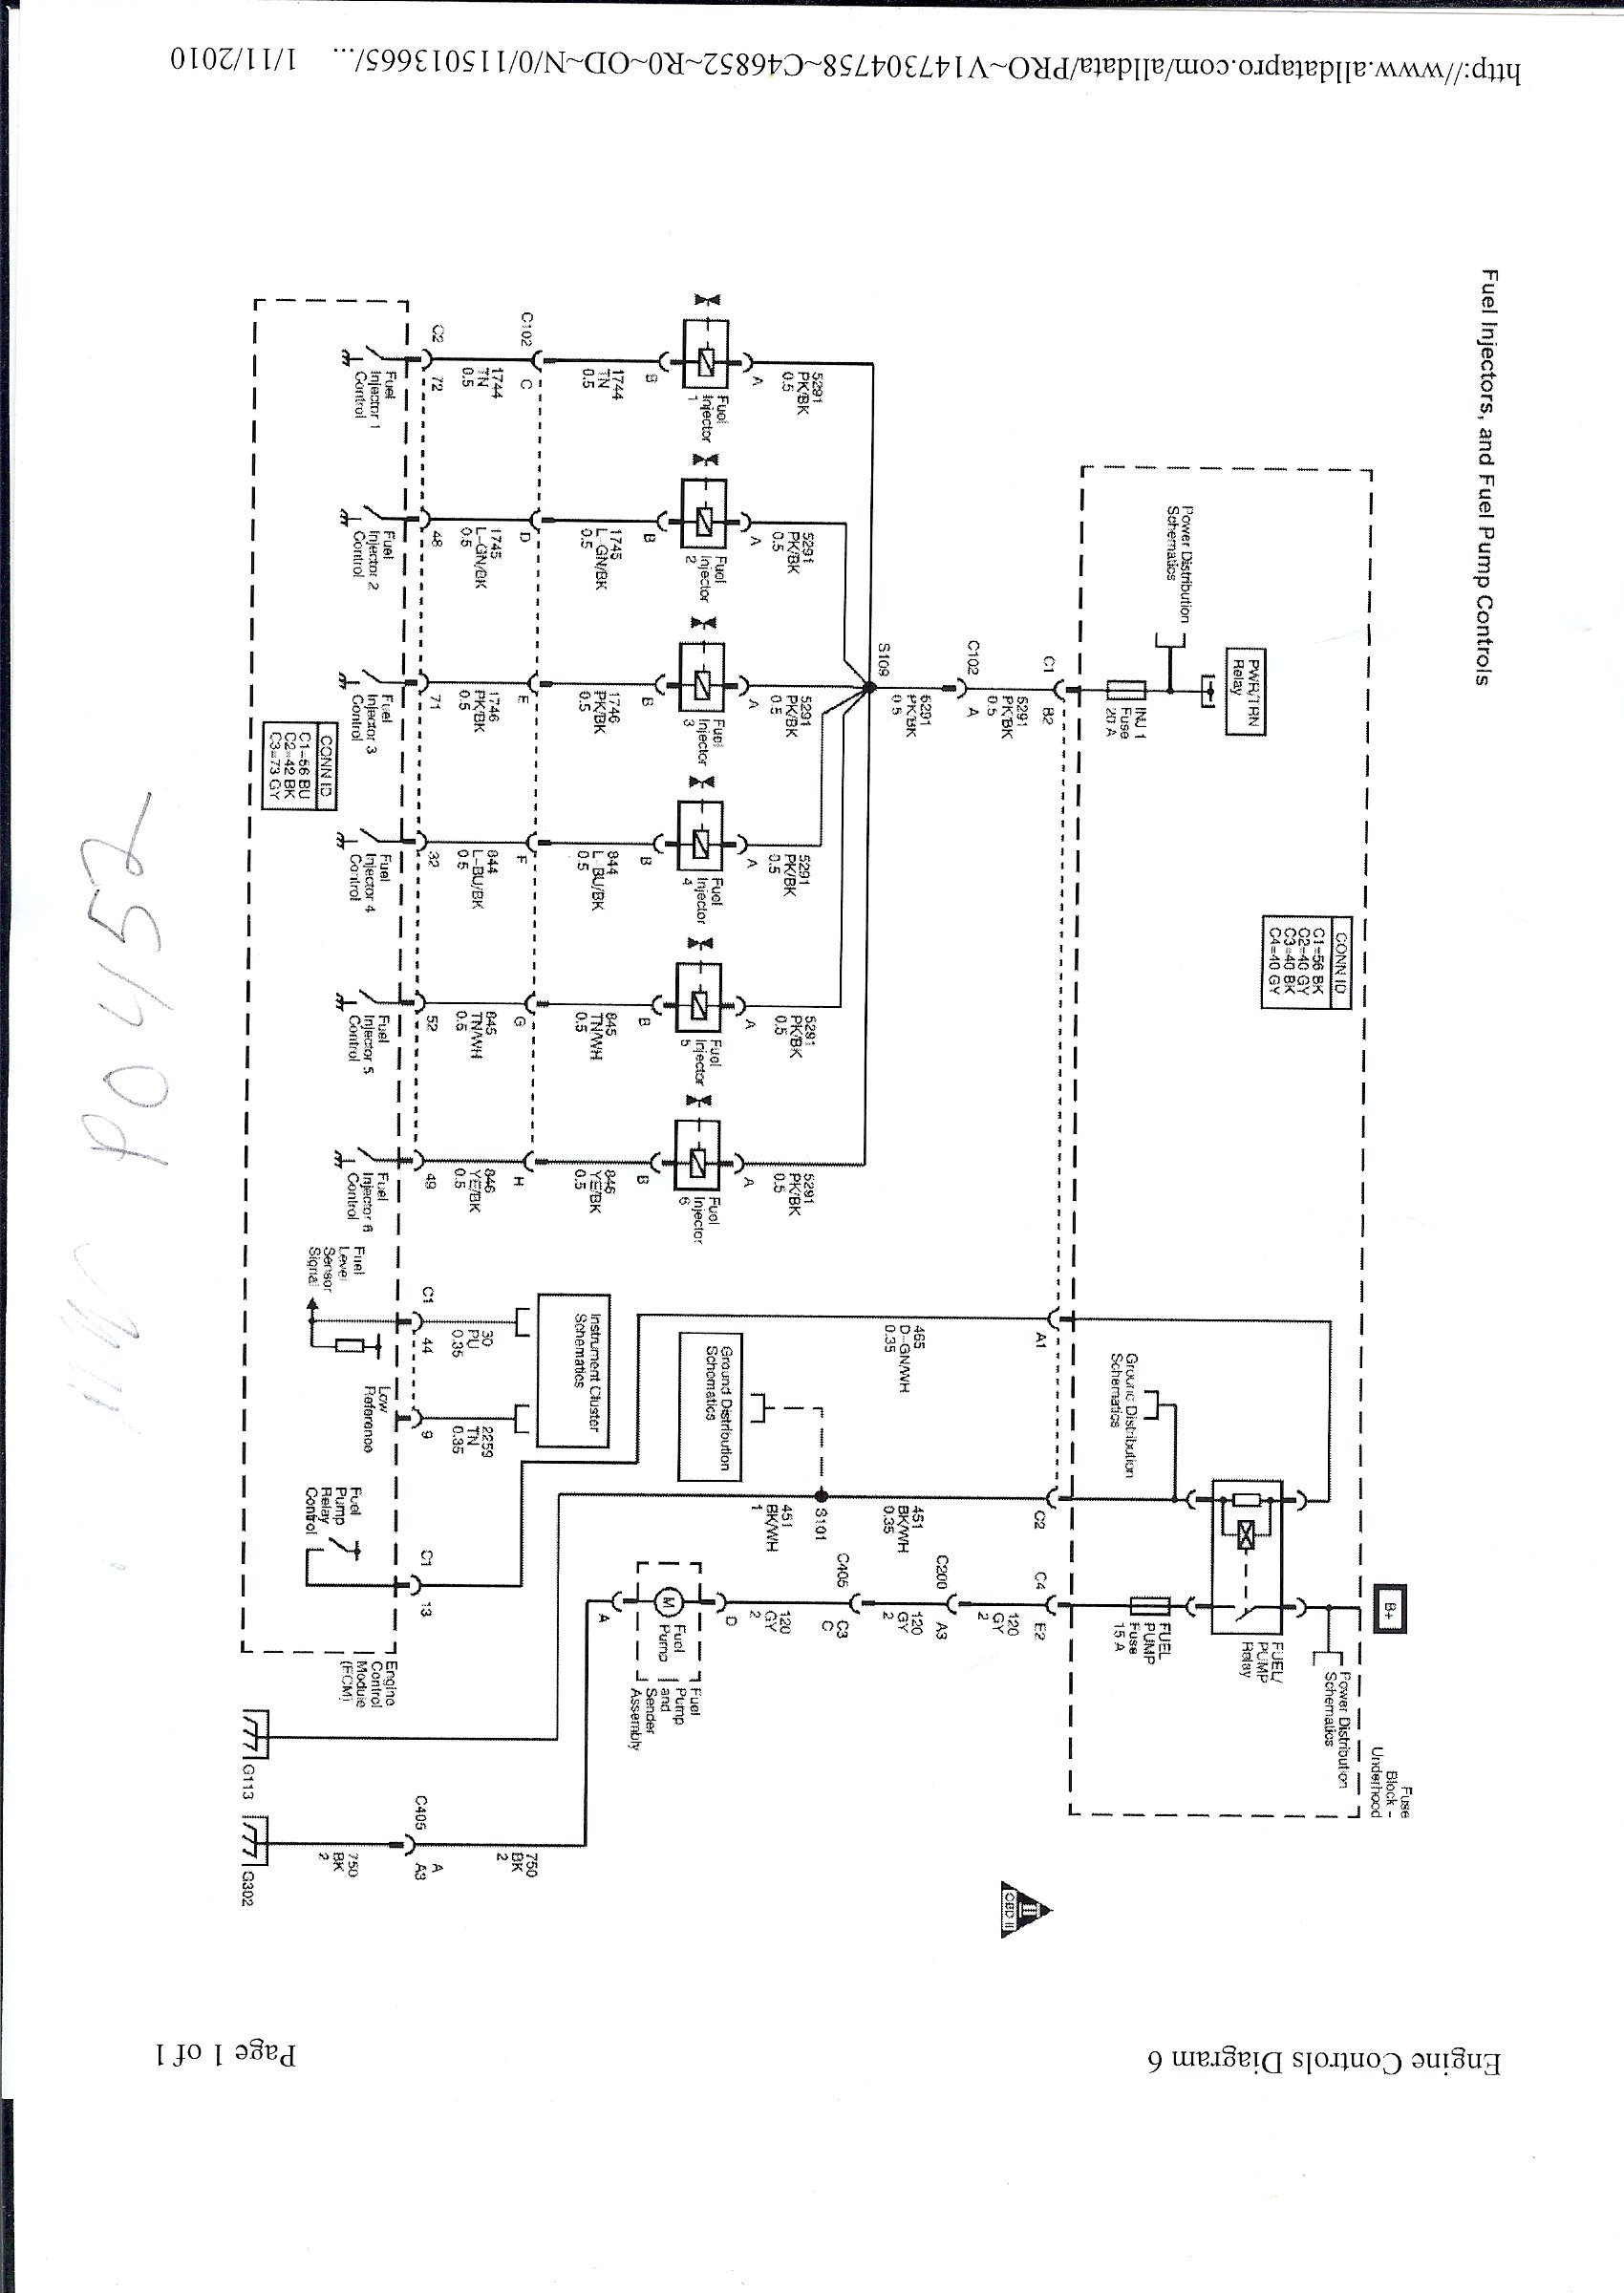 2010 01 13_020441_wiring_diagram 2006 chevy impala fuel pump went out replaced pump still will chevy fuel pump wiring diagram at honlapkeszites.co